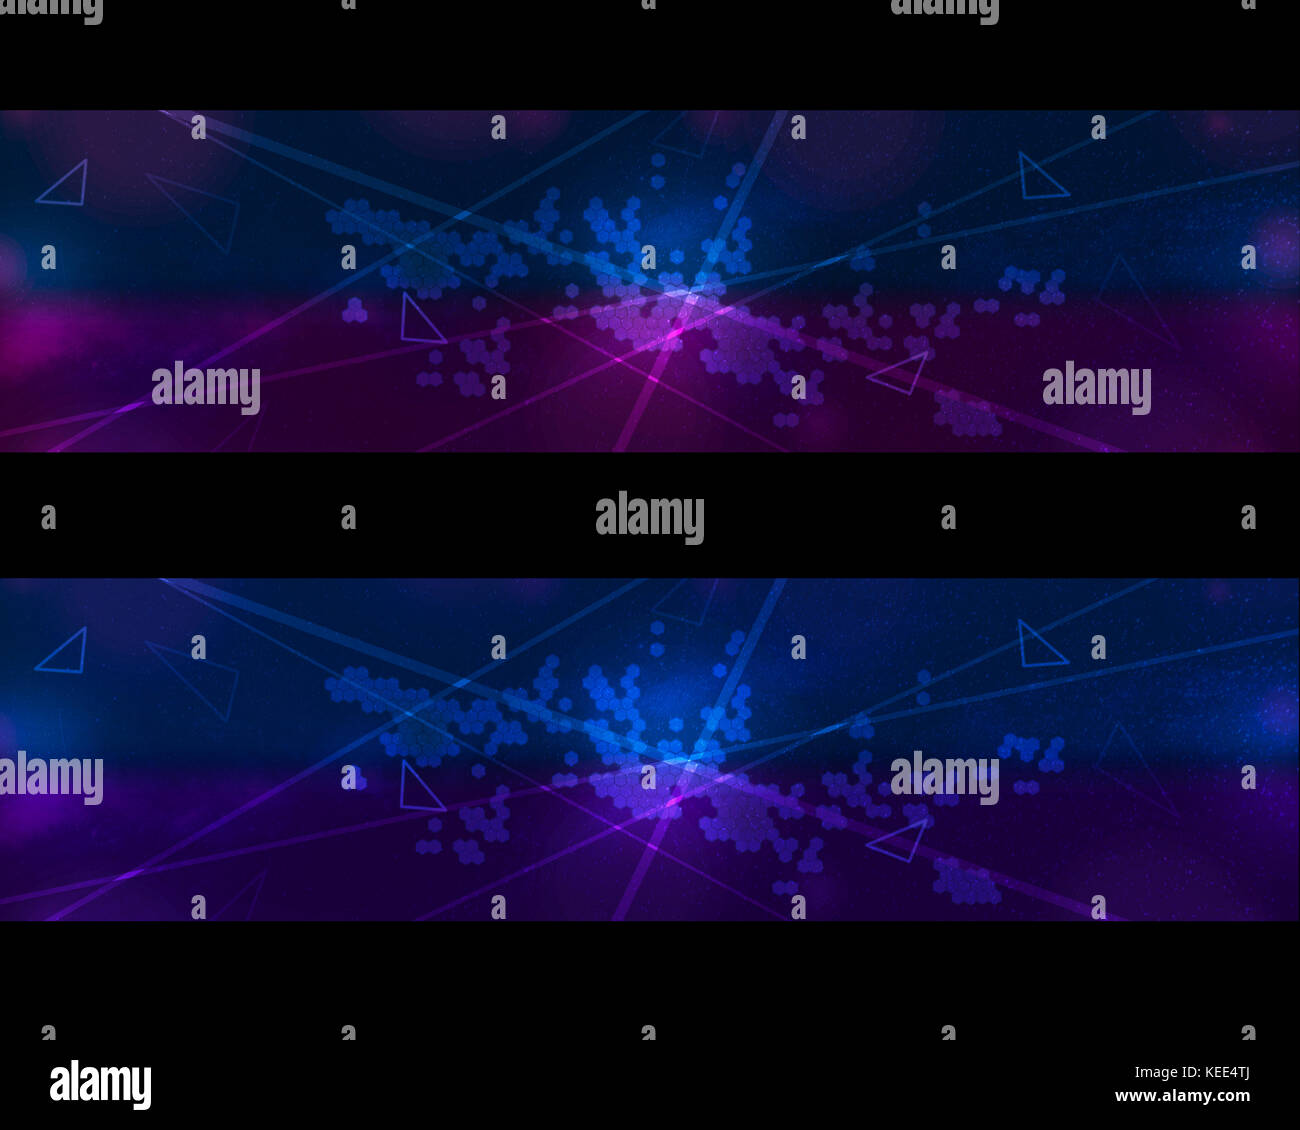 Neon laser light banner uses as technological background in two tones - Stock Image